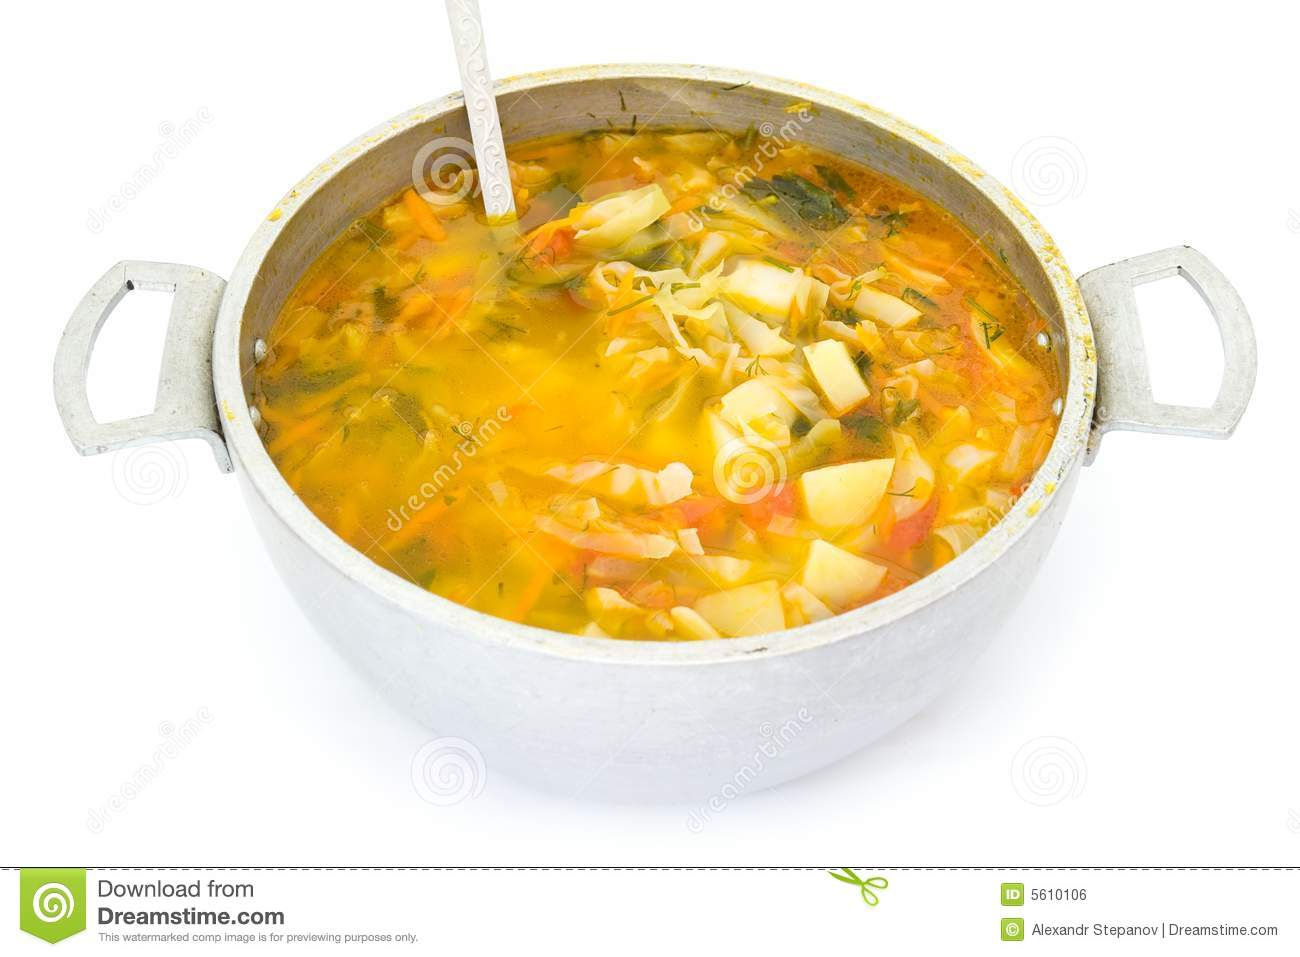 Dutch Oven With Soup Royalty Free Stock Image - Image: 5610106